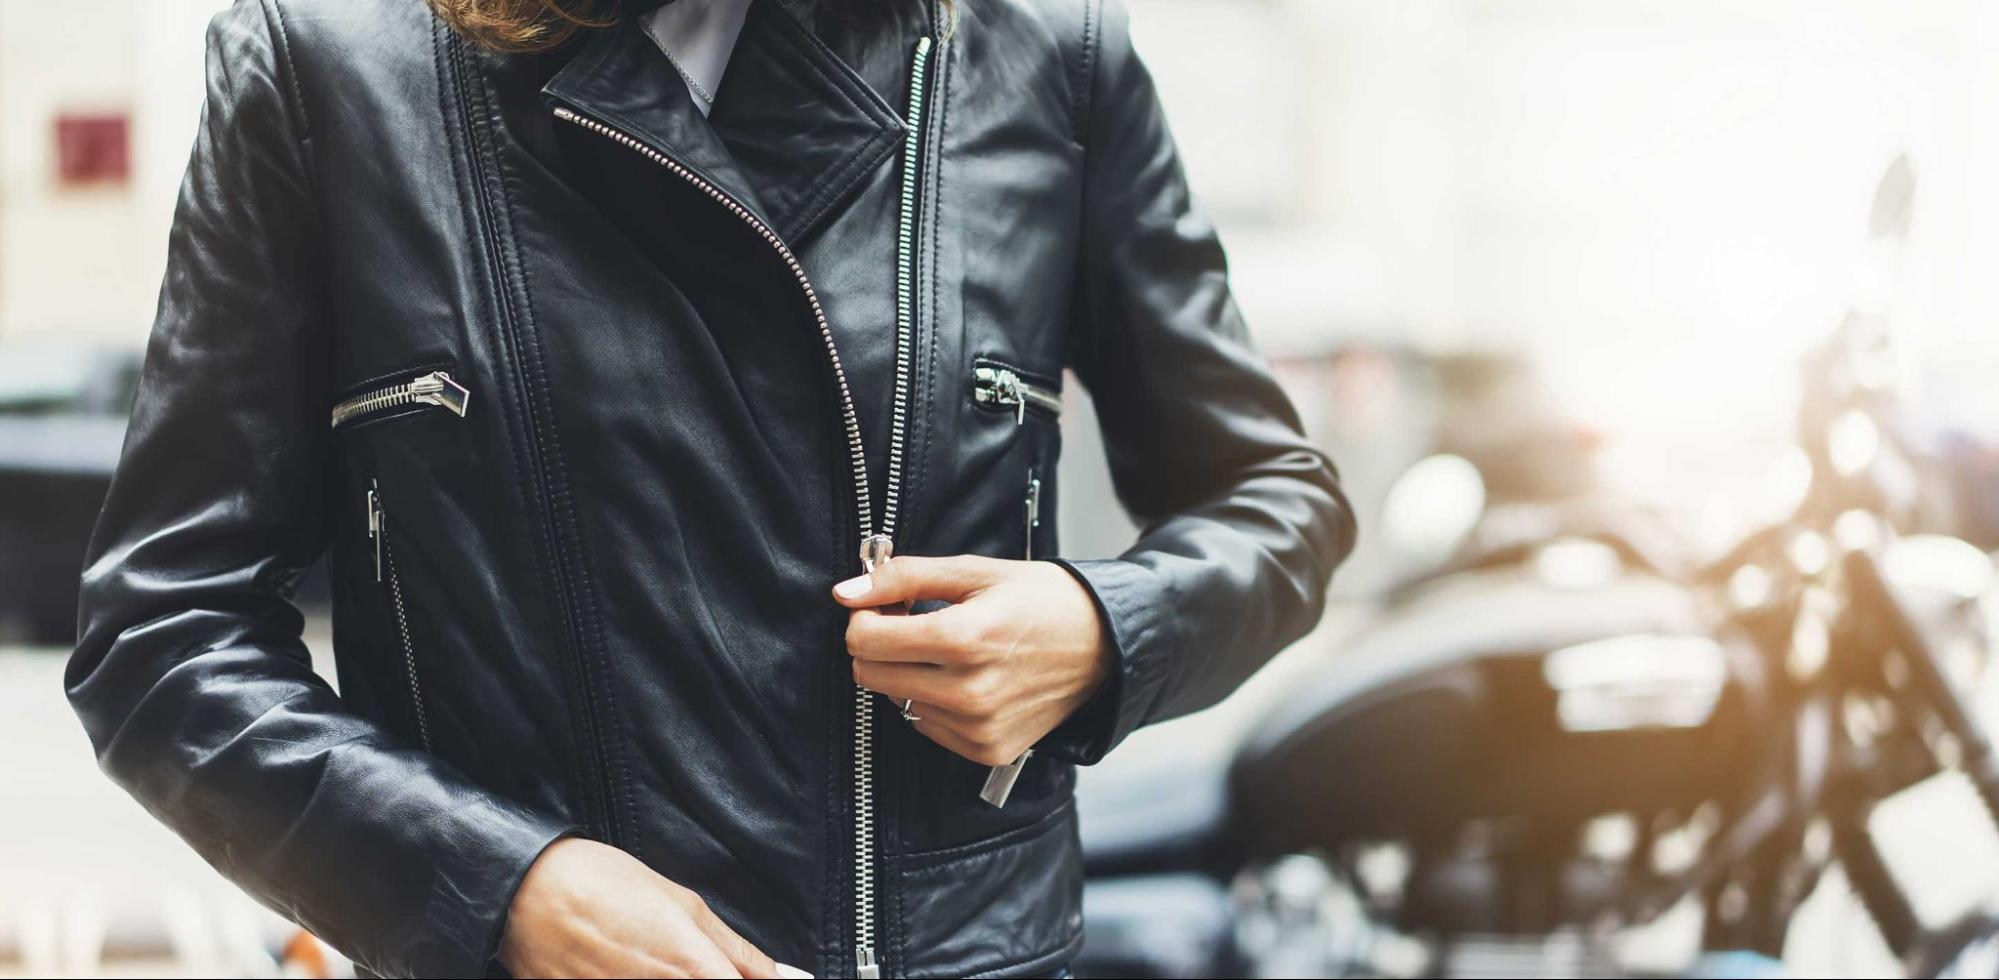 How To Remove Stains From Leather Jacket